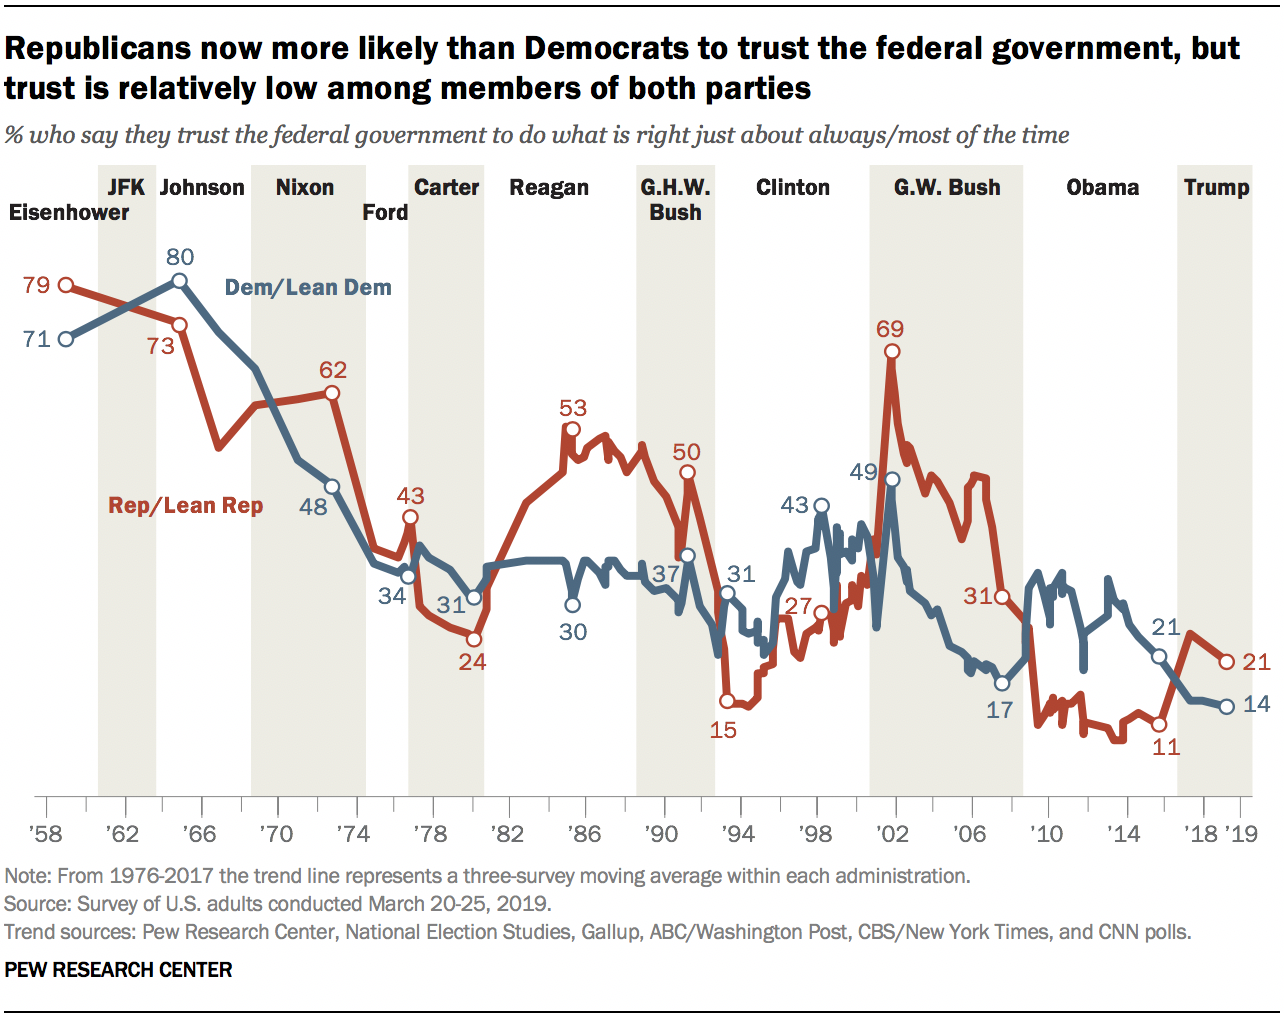 Republicans now more likely than Democrats to trust the federal government, but trust is relatively low among members of both parties